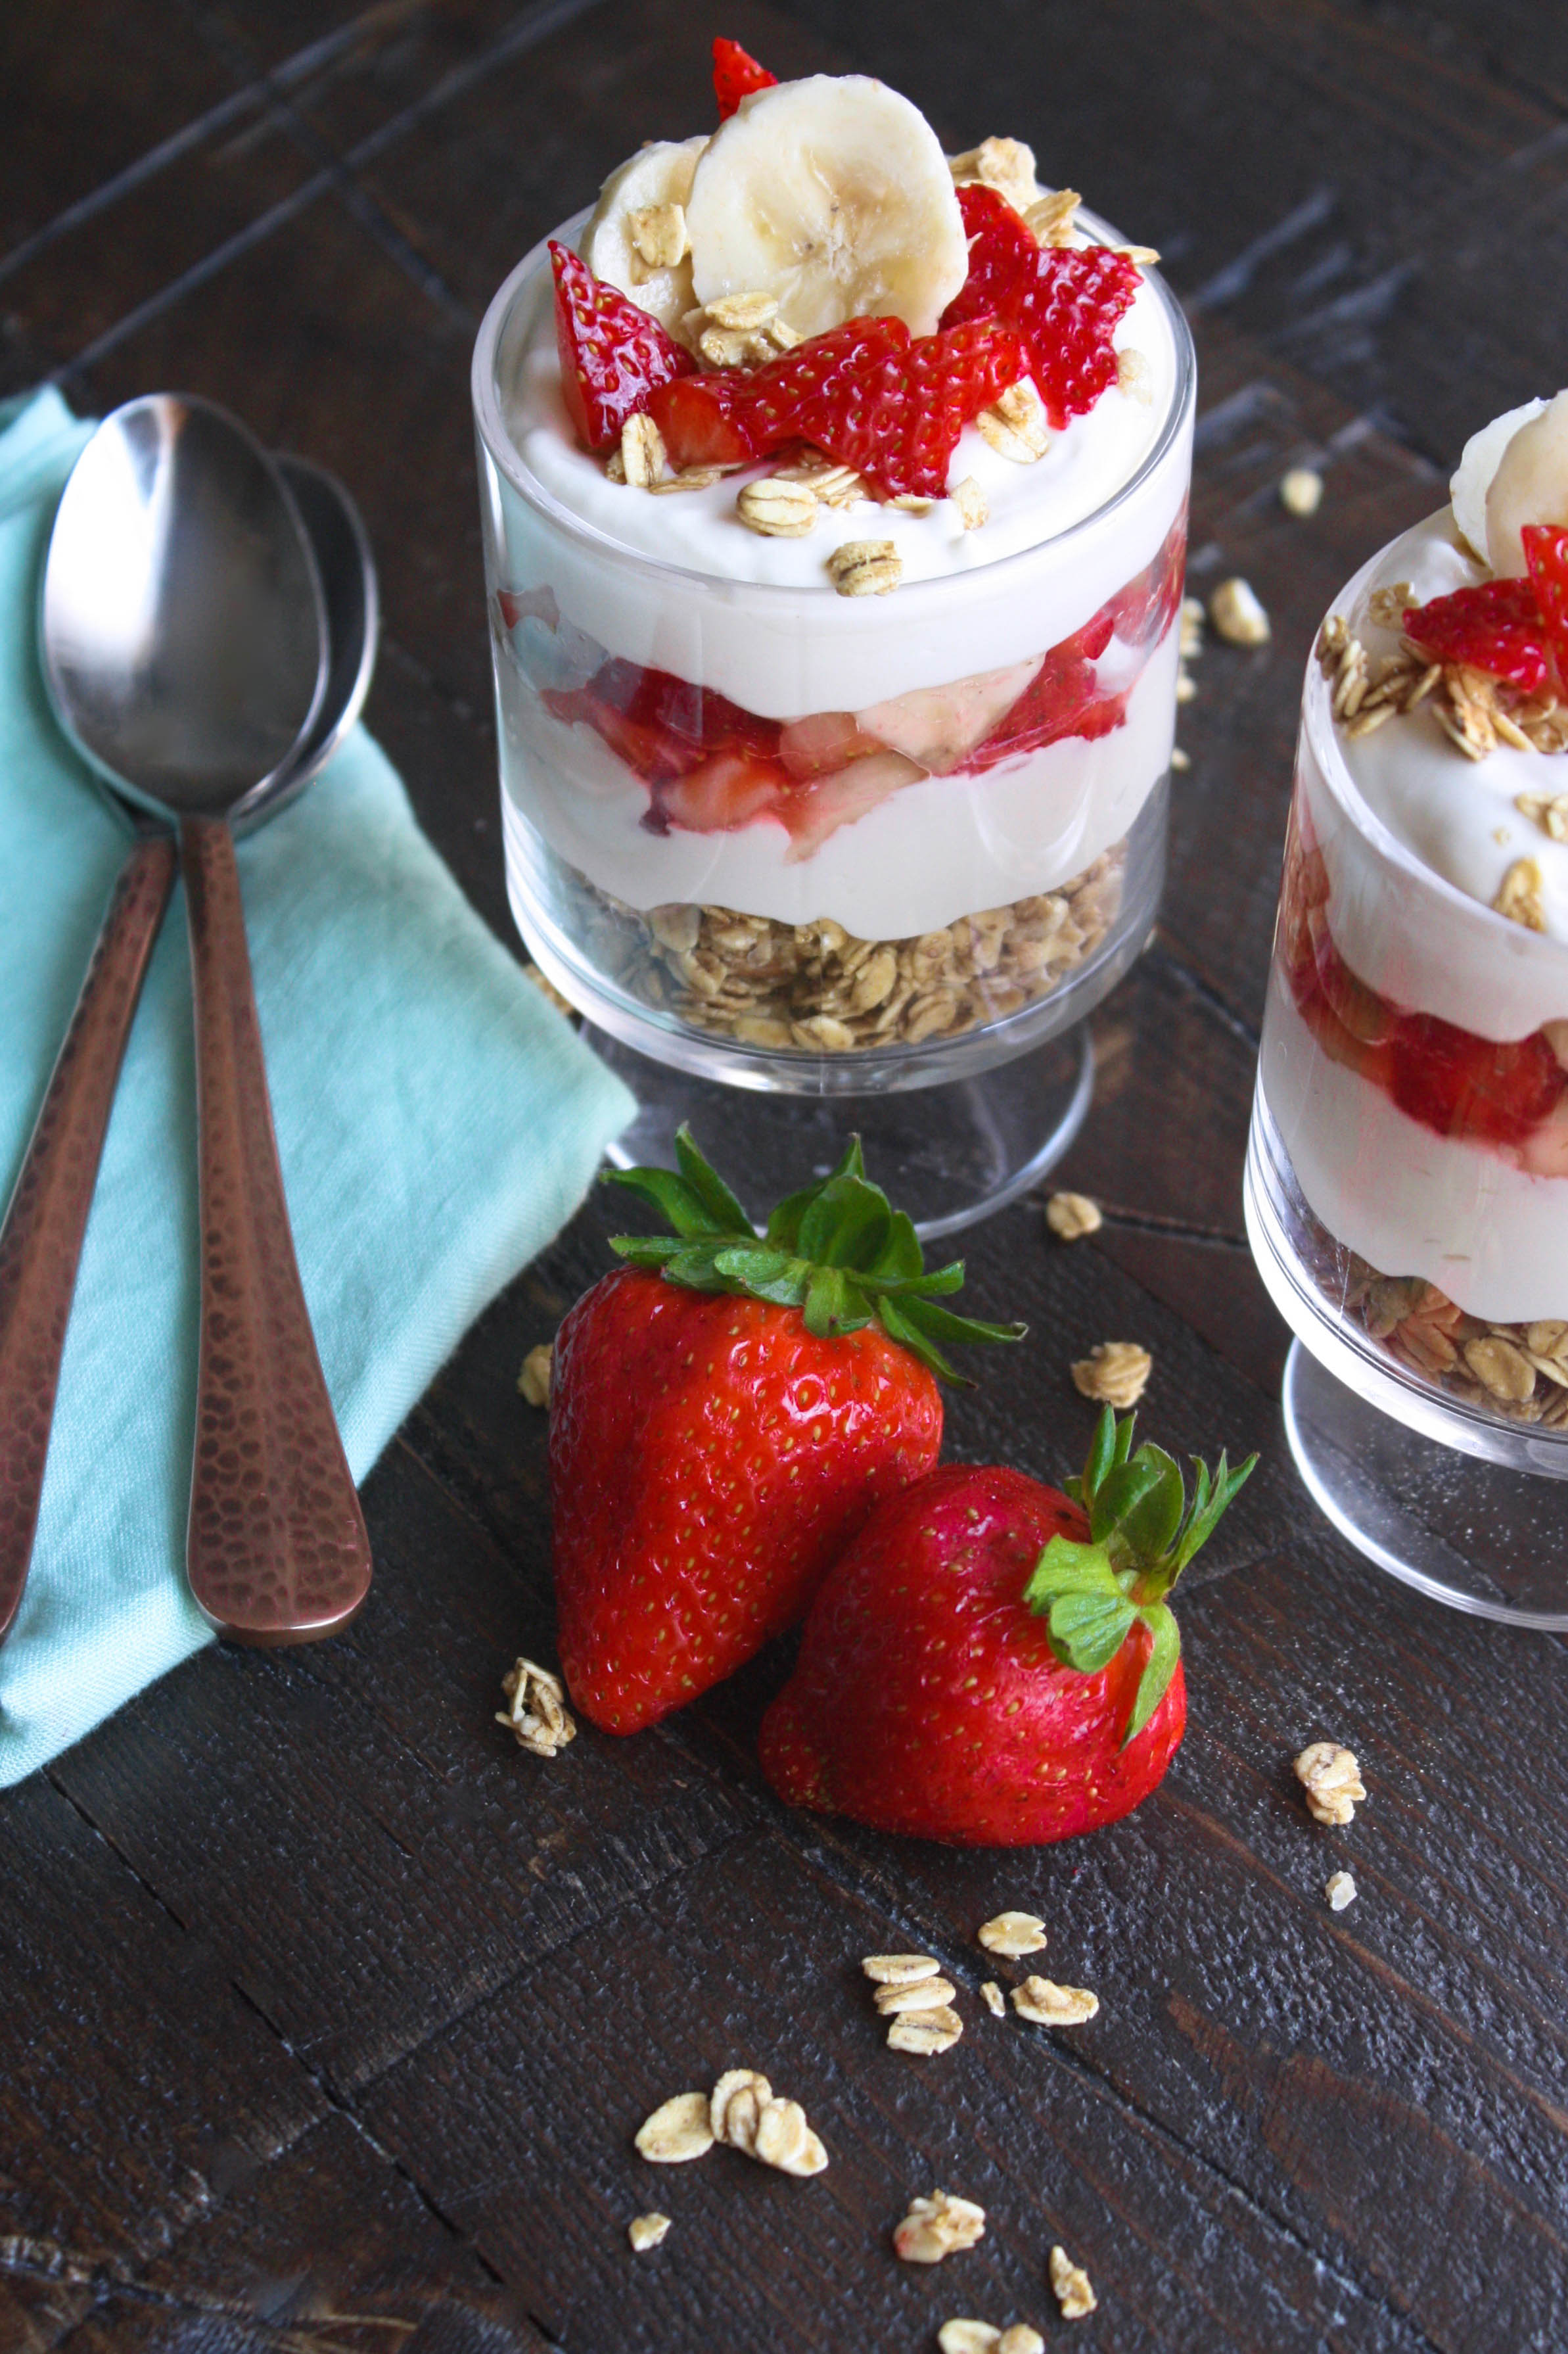 No Bake Strawberry-Banana Cheesecake Parfaits are a delightful dessert. Pile the cheesecake filling with granola and fresh fruit for a wonderful no-bake treat.